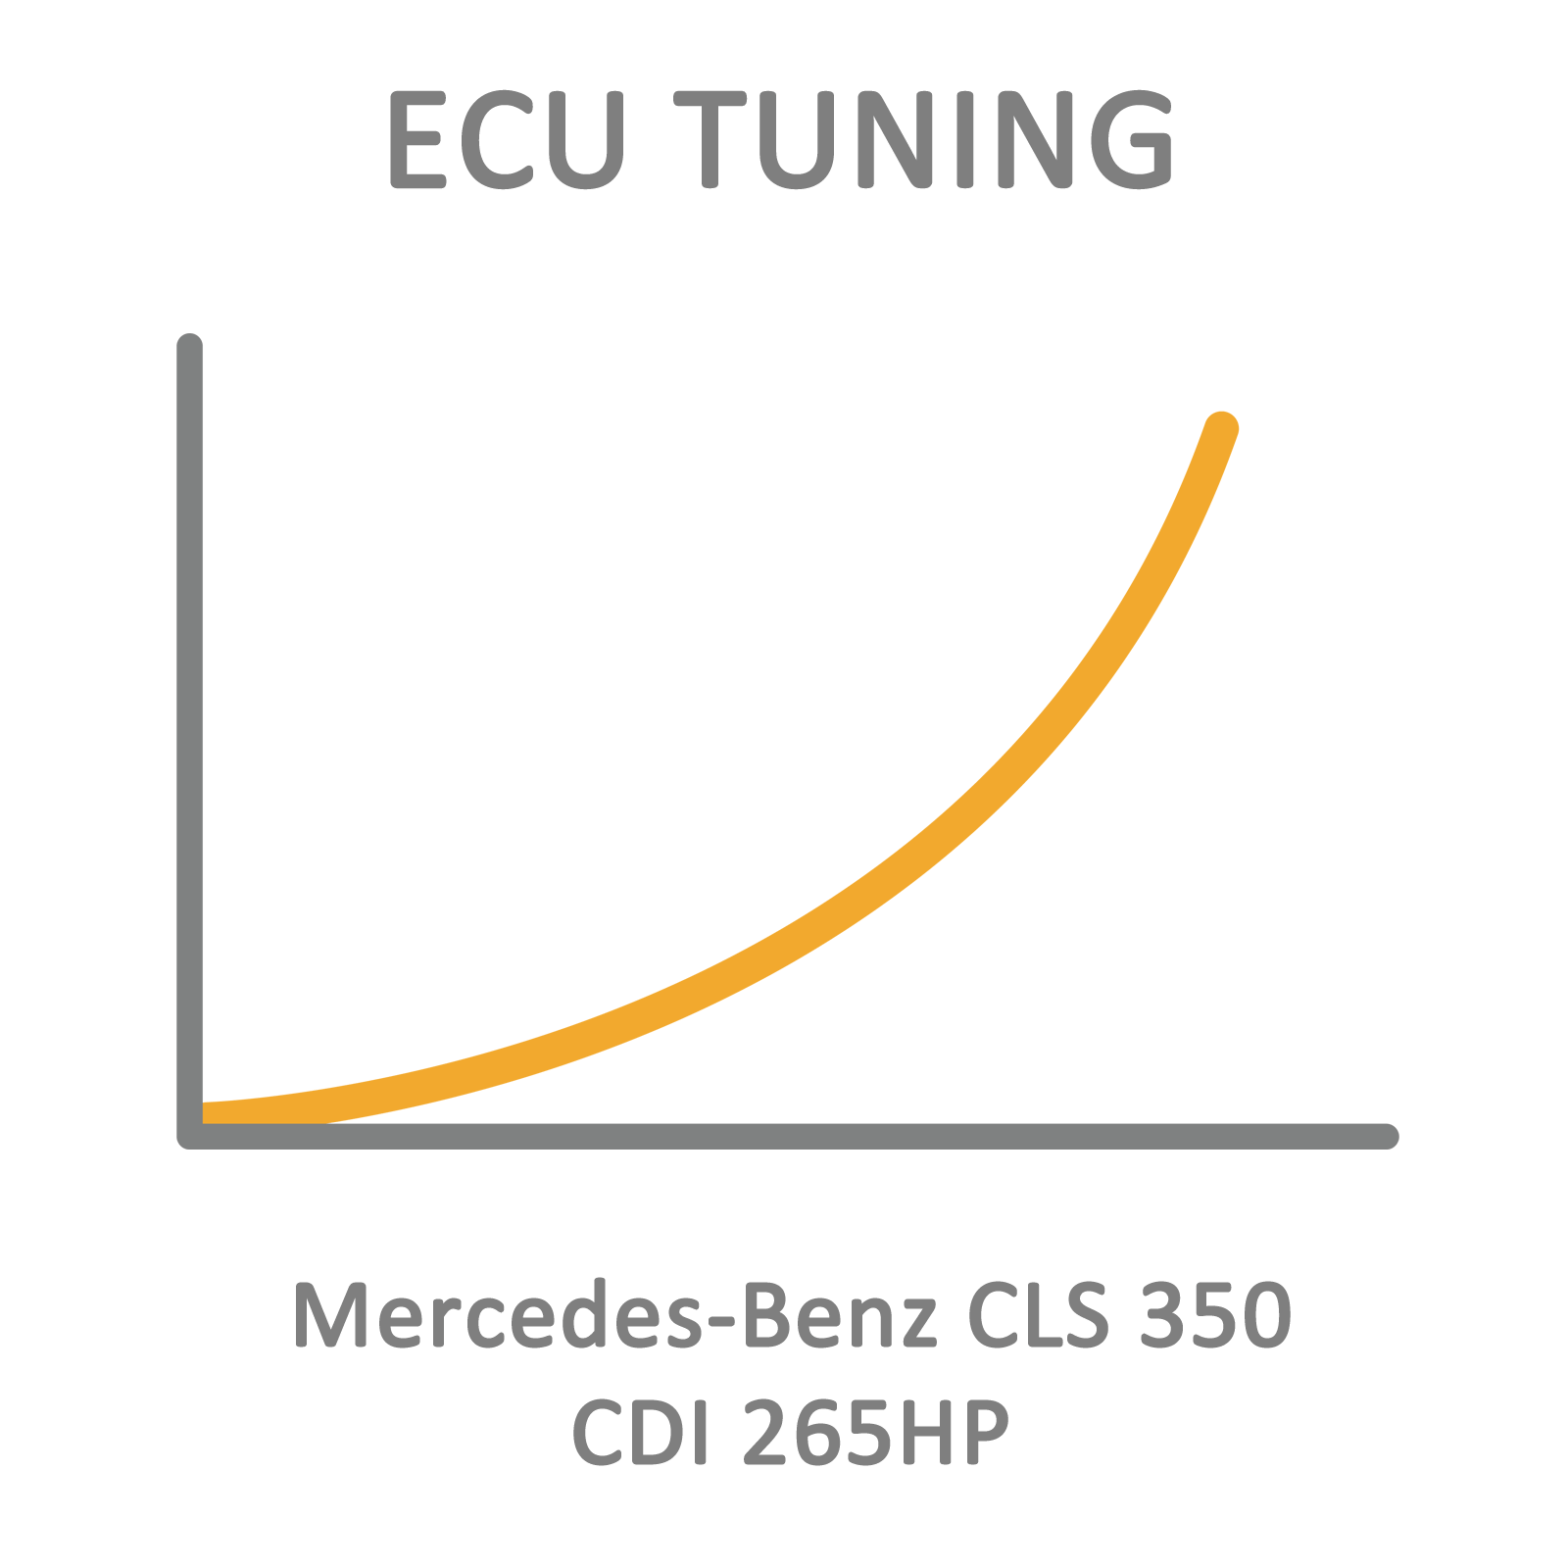 Mercedes-Benz CLS 350 CDI 265HP ECU Tuning Remapping